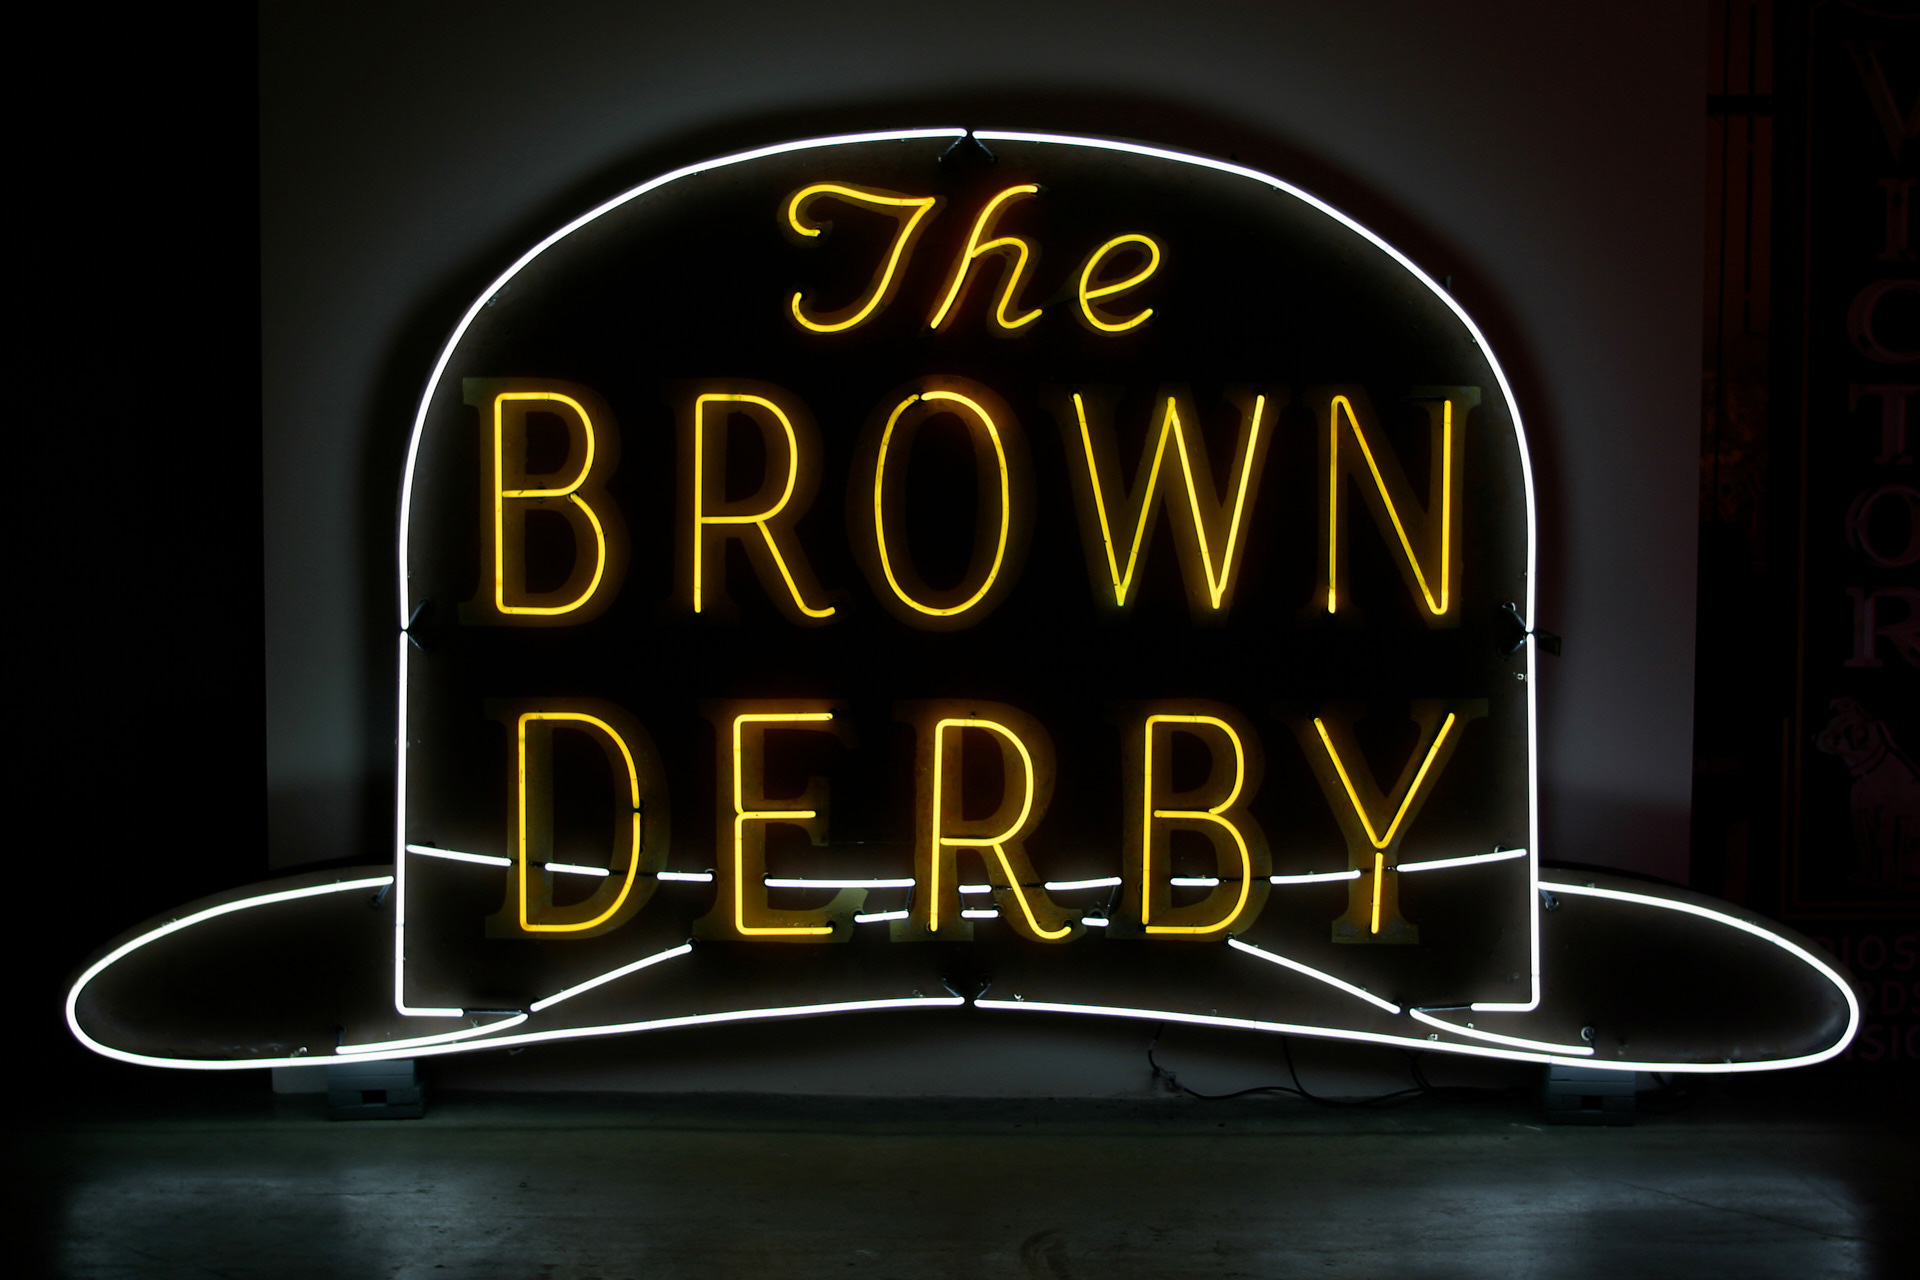 history-close-to-home-8-mona-museum-of-neon-art-brown-derby-sign-from-hollywood-and-vine-1930s